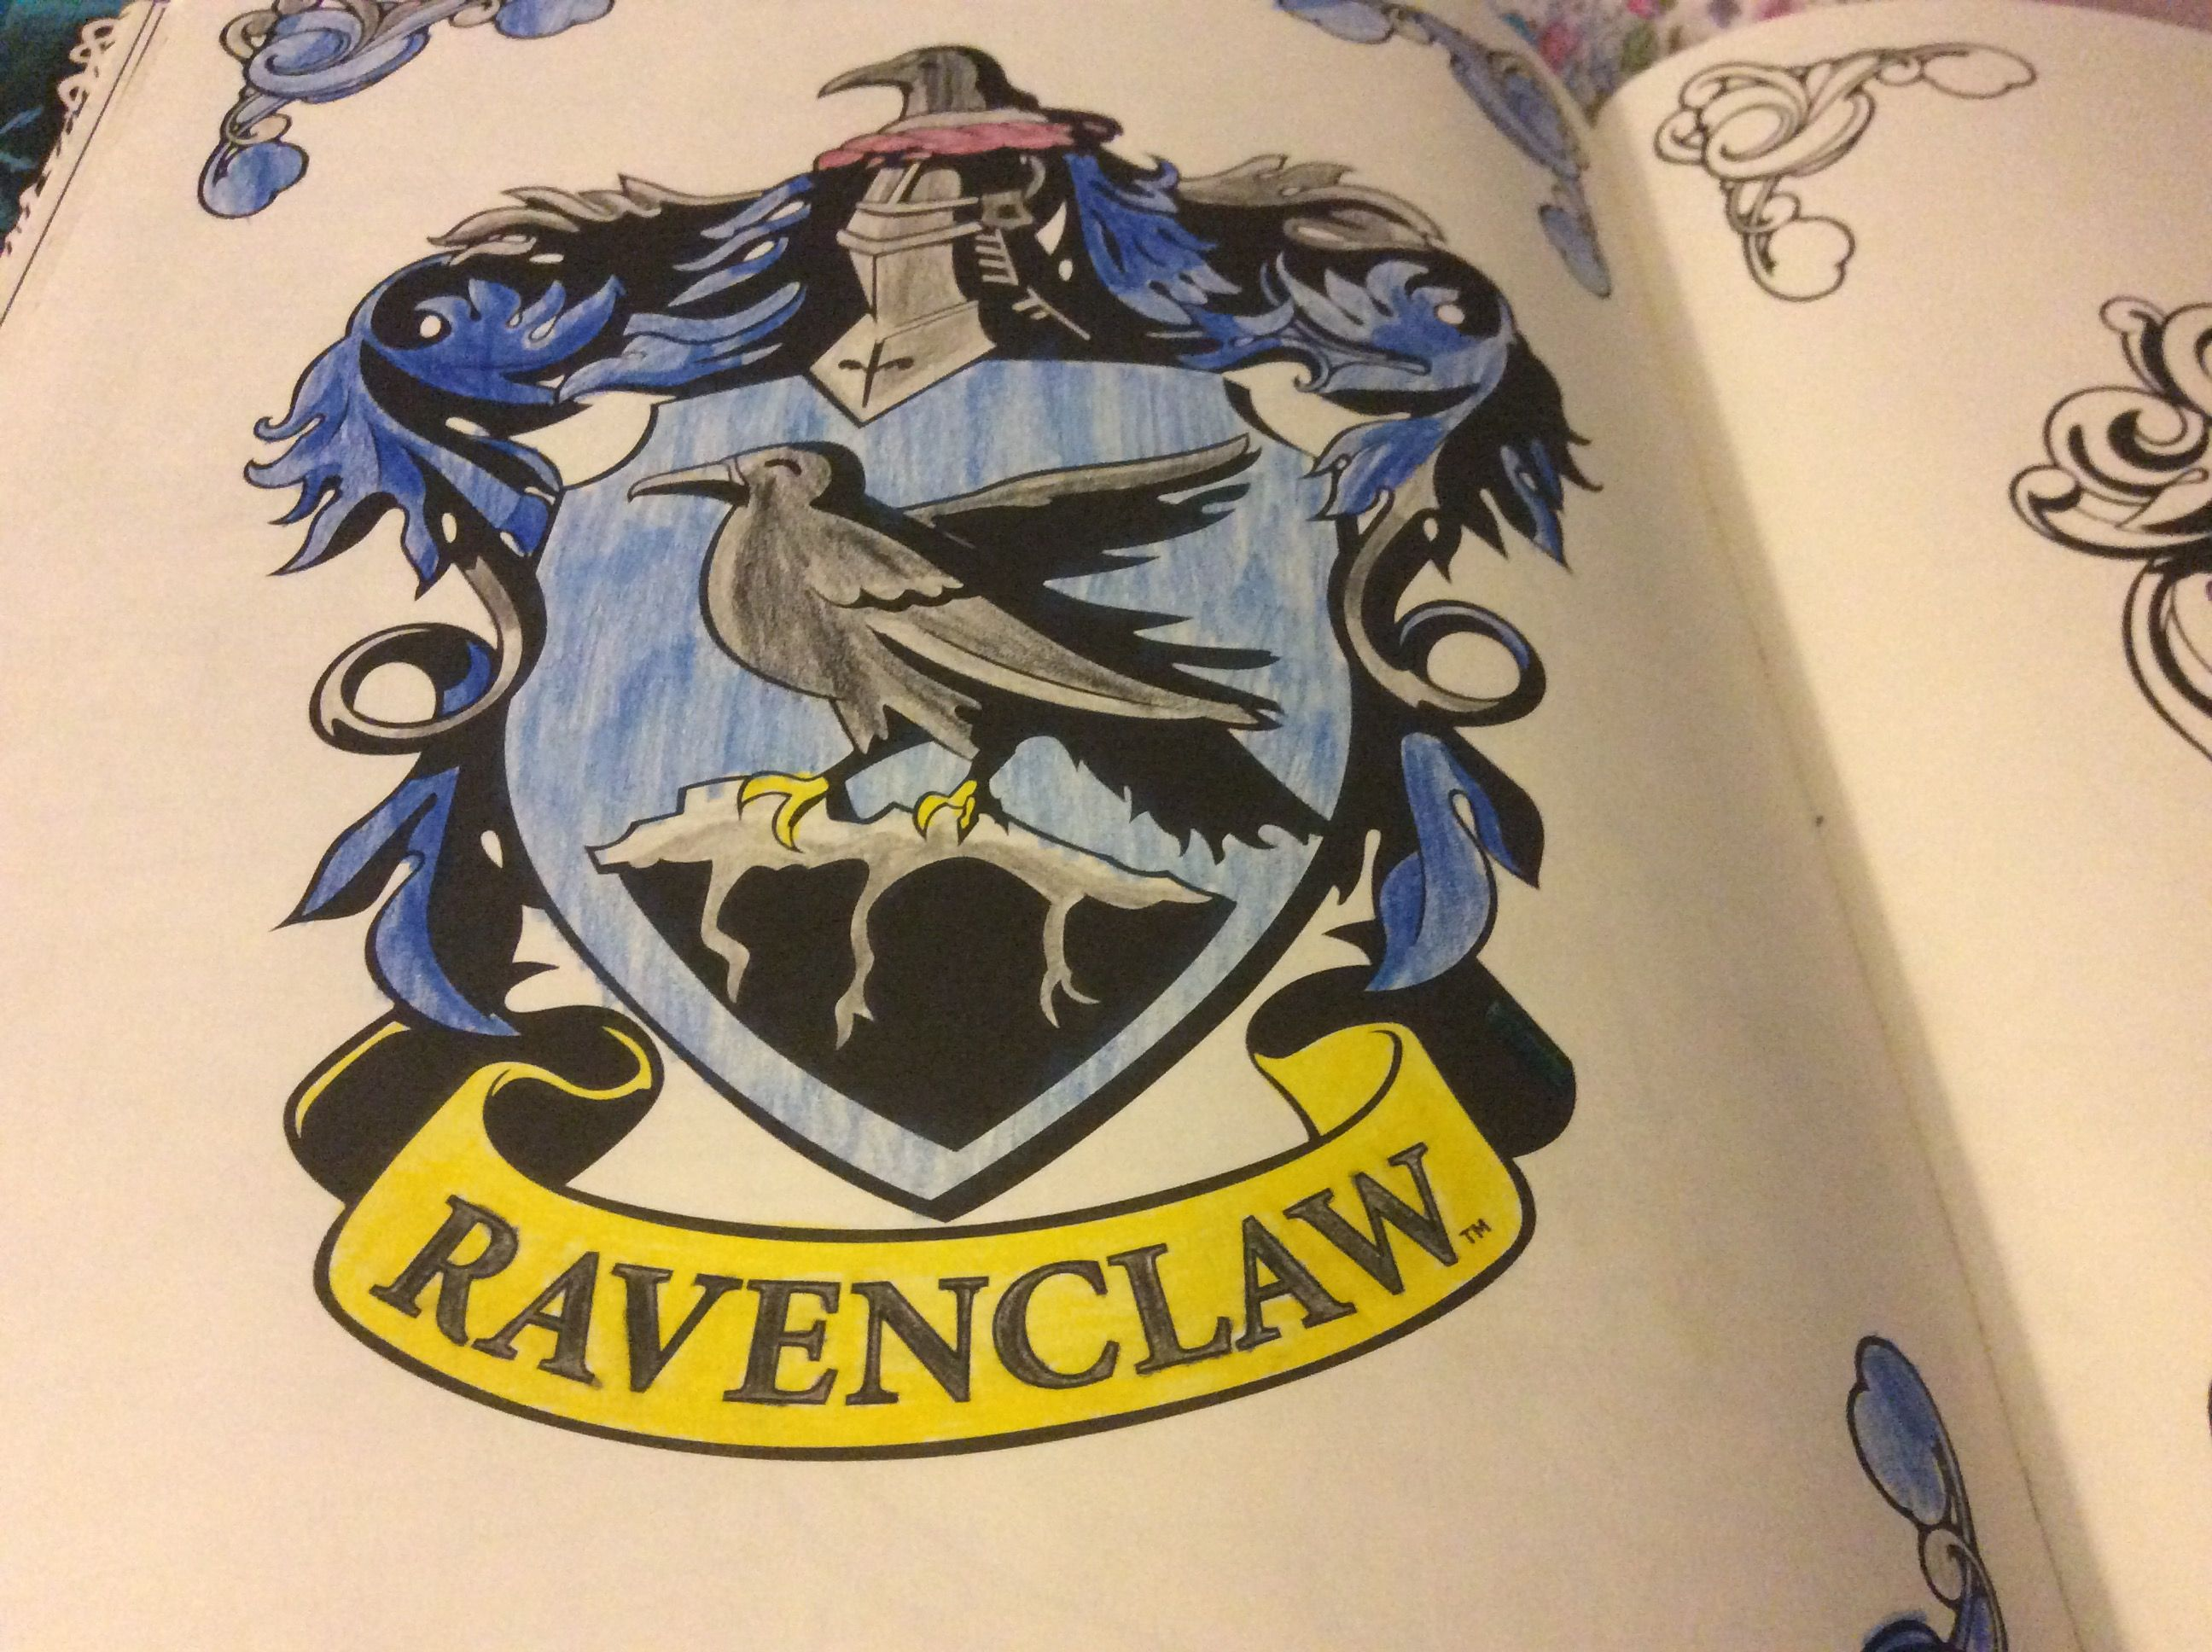 ravenclaw crest from the harry potter colouring book